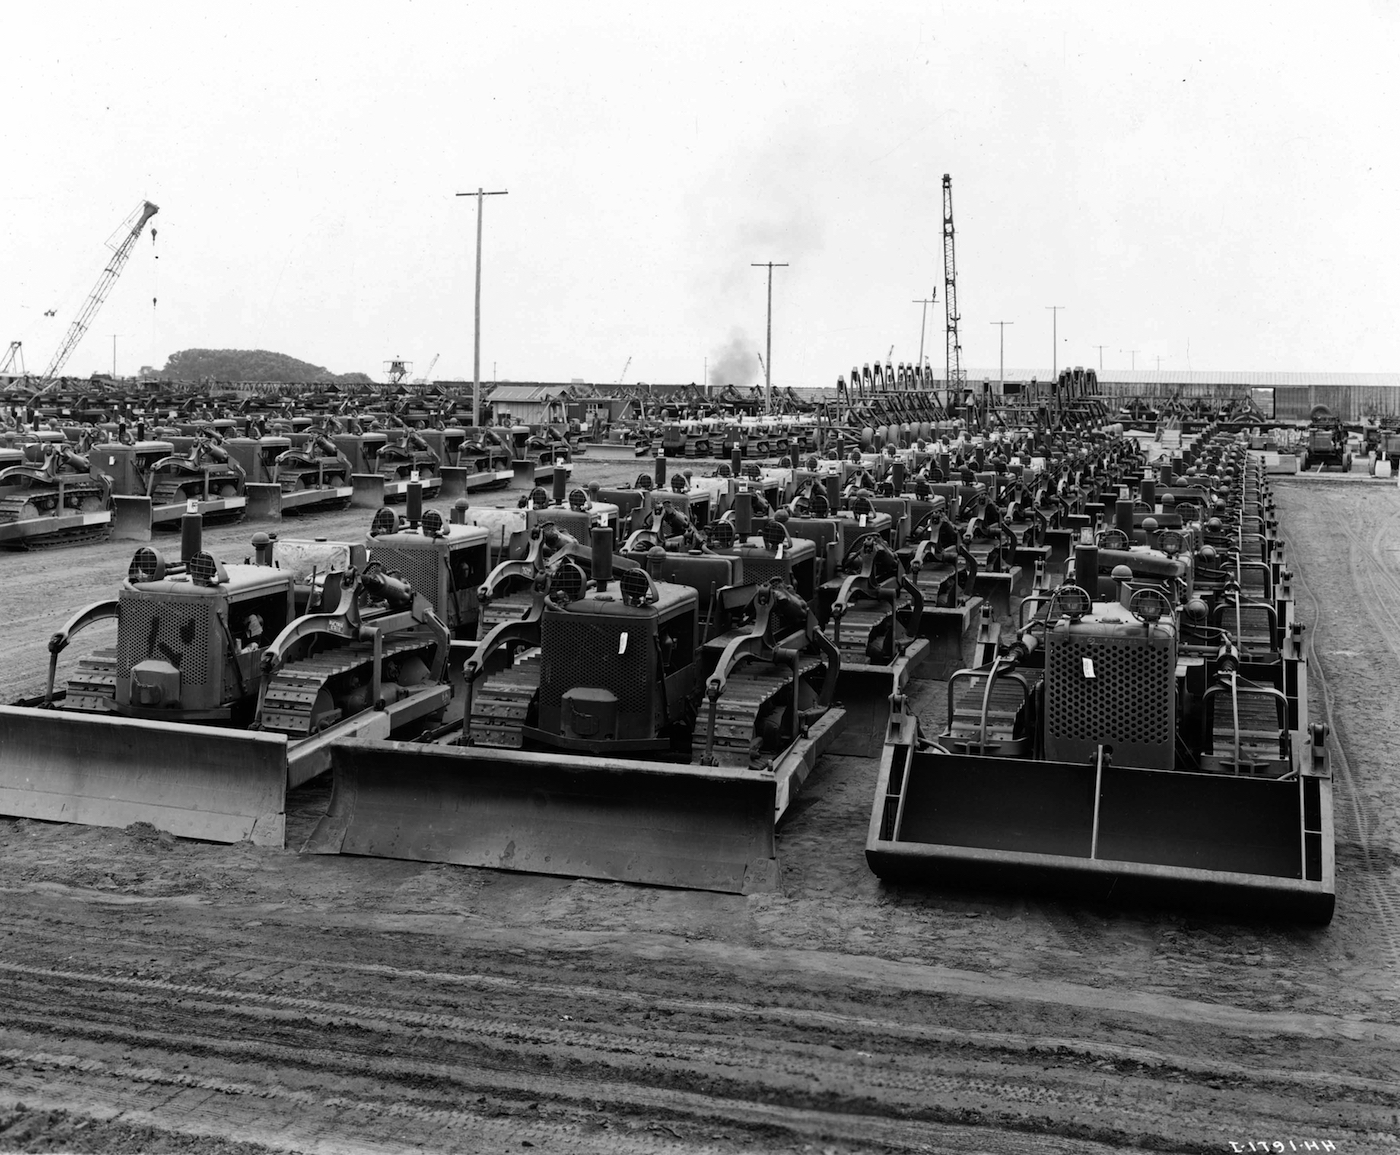 International Harvester bulldozers lined up for war (courtesy Yale University Press)